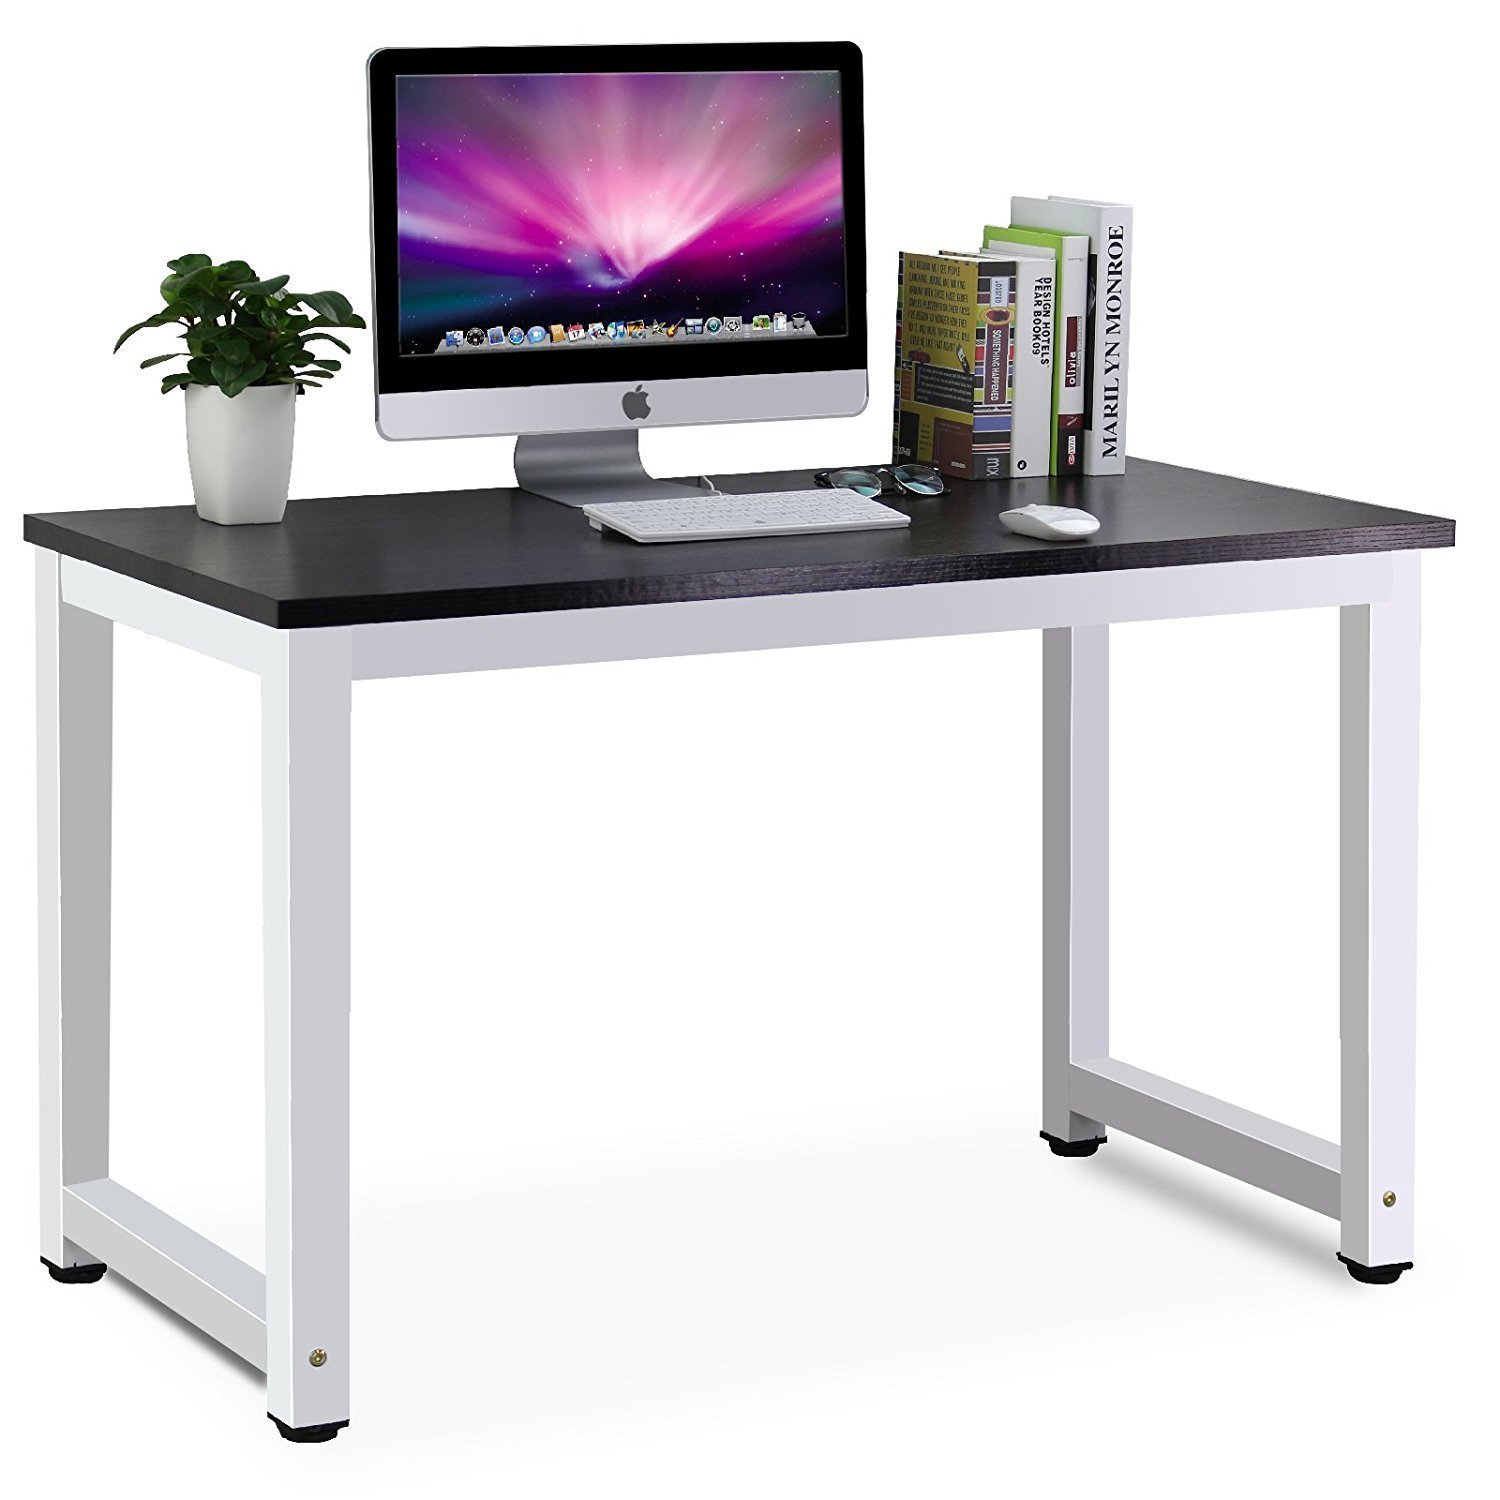 amazoncom  tribesigns modern simple style computer desk pc laptop studytable workstation for home office black  office products. amazoncom  tribesigns modern simple style computer desk pc